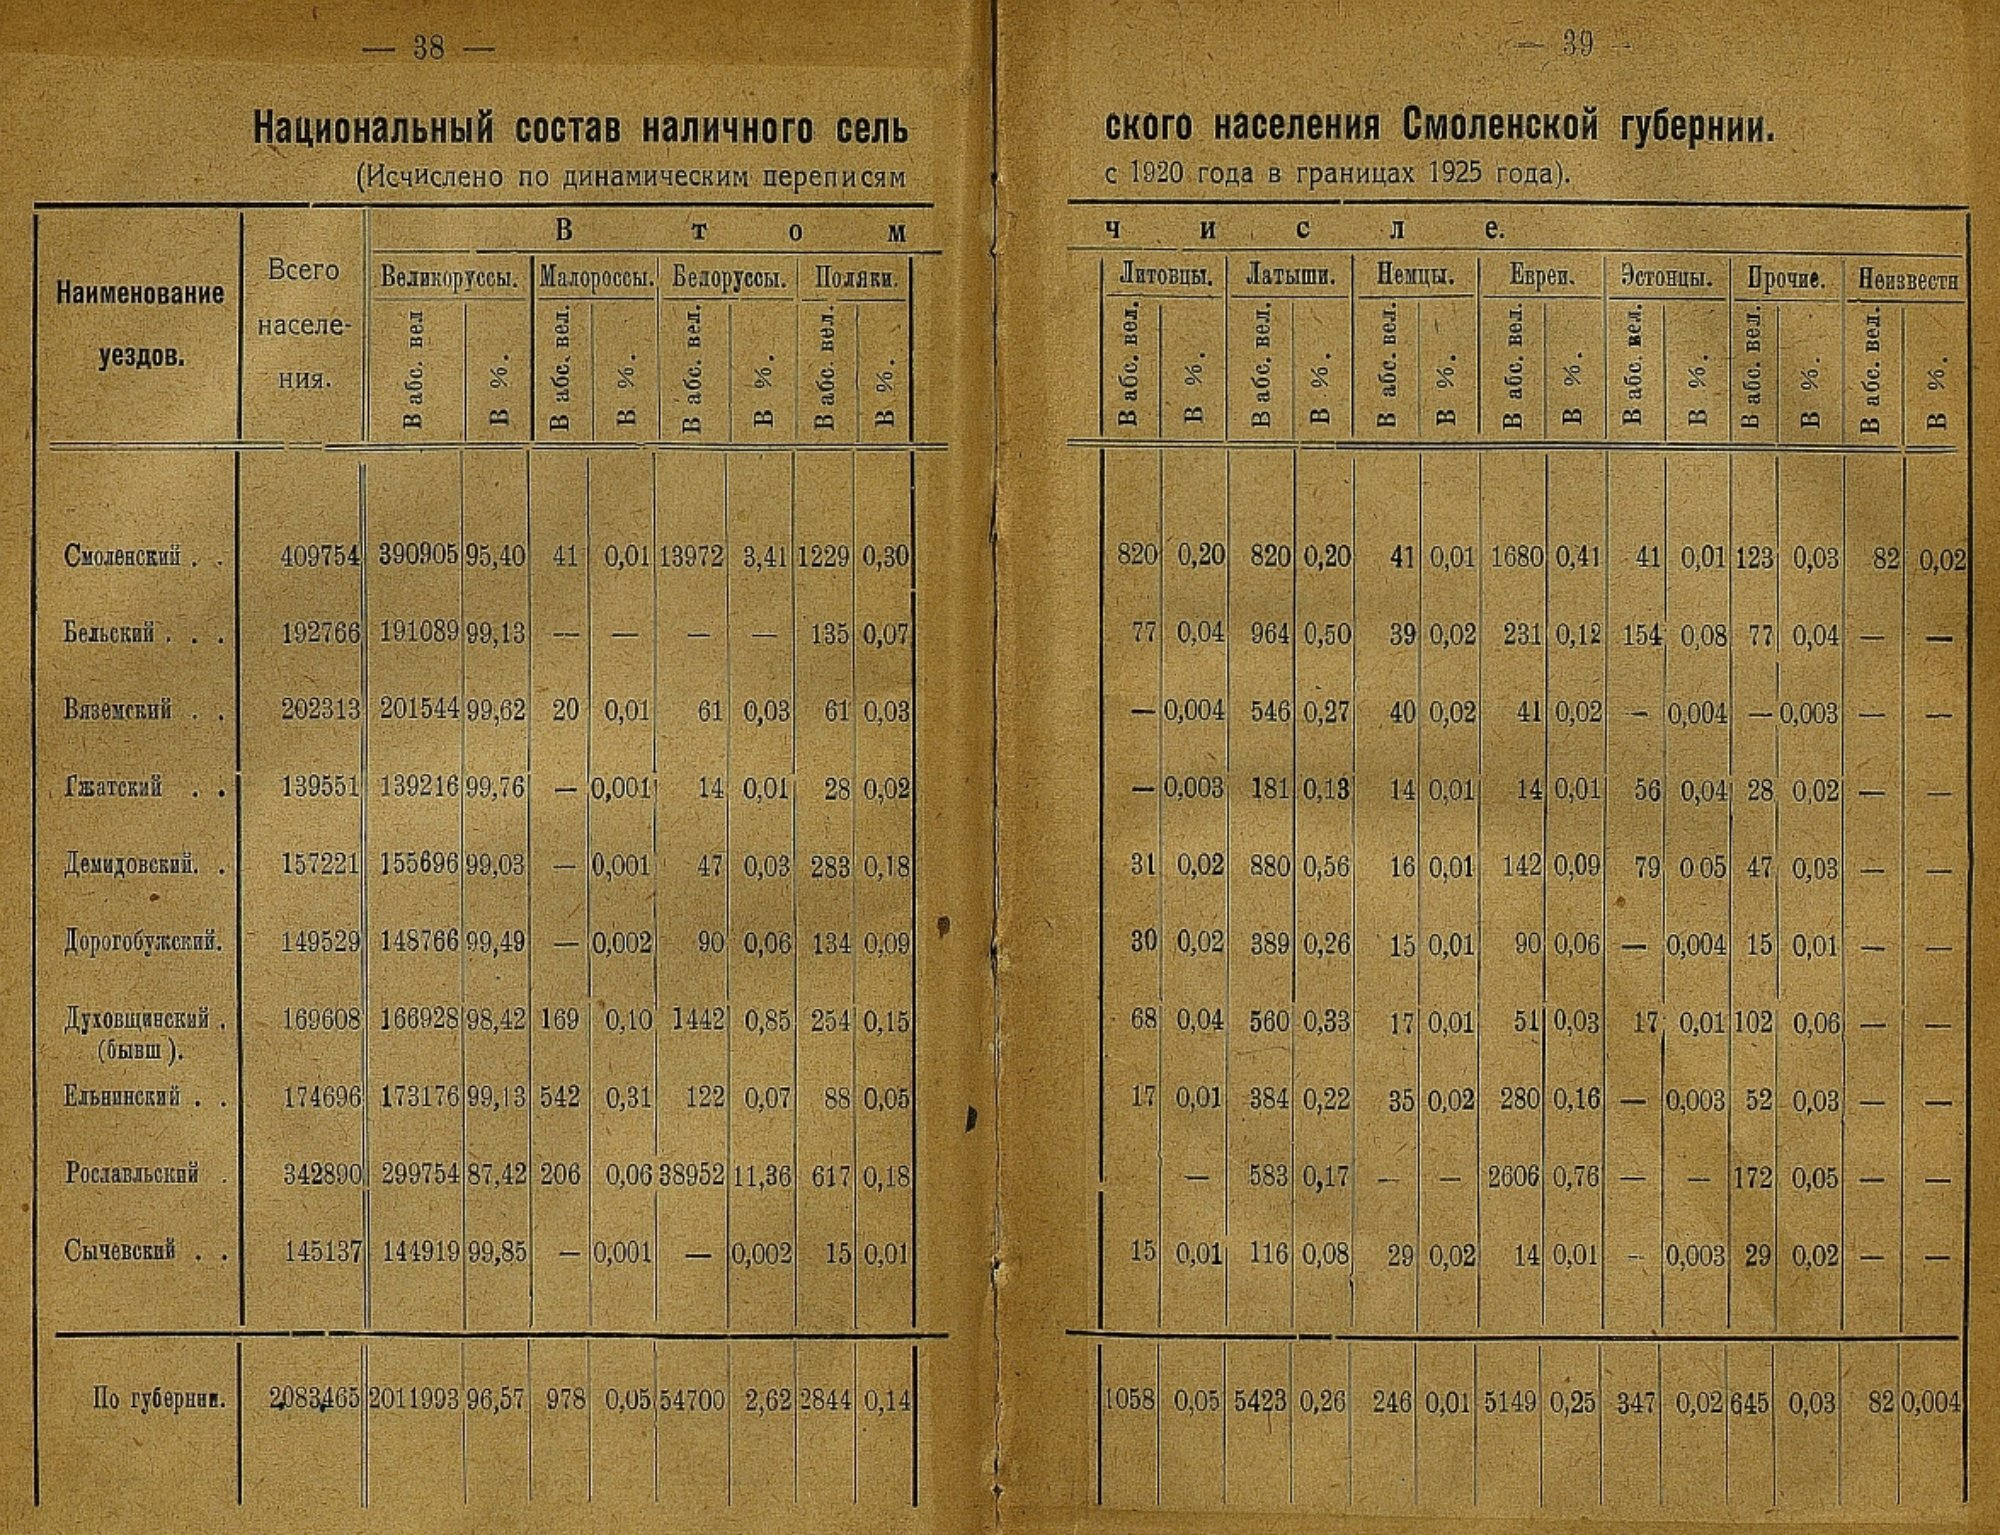 nationalities-villages-1920_all-smolensk-1925_pp38-39